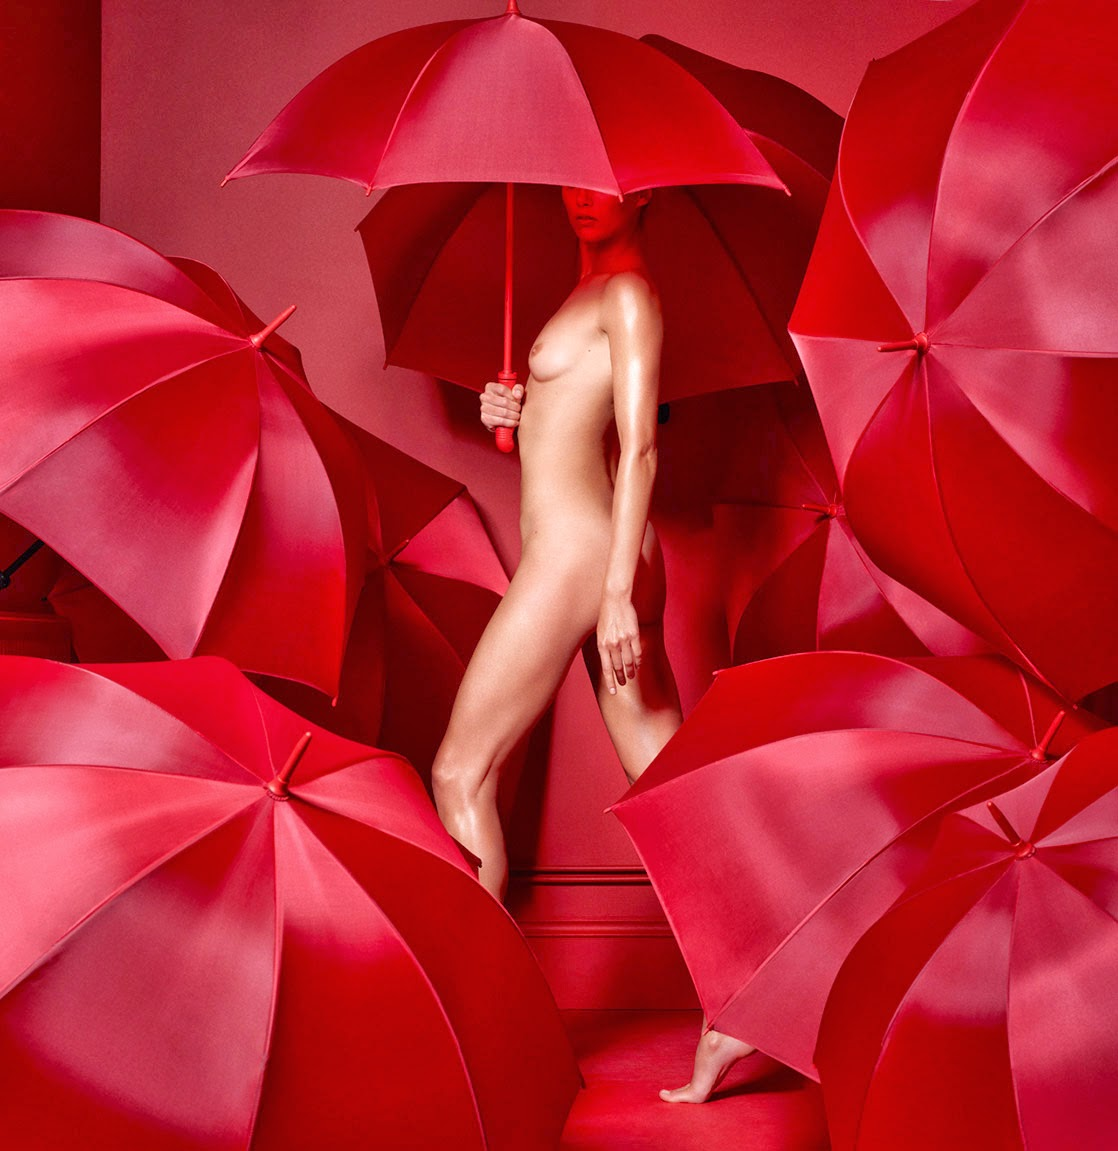 ©Cuneyt Akeroglu - The Red Room Project. Fashion Photography